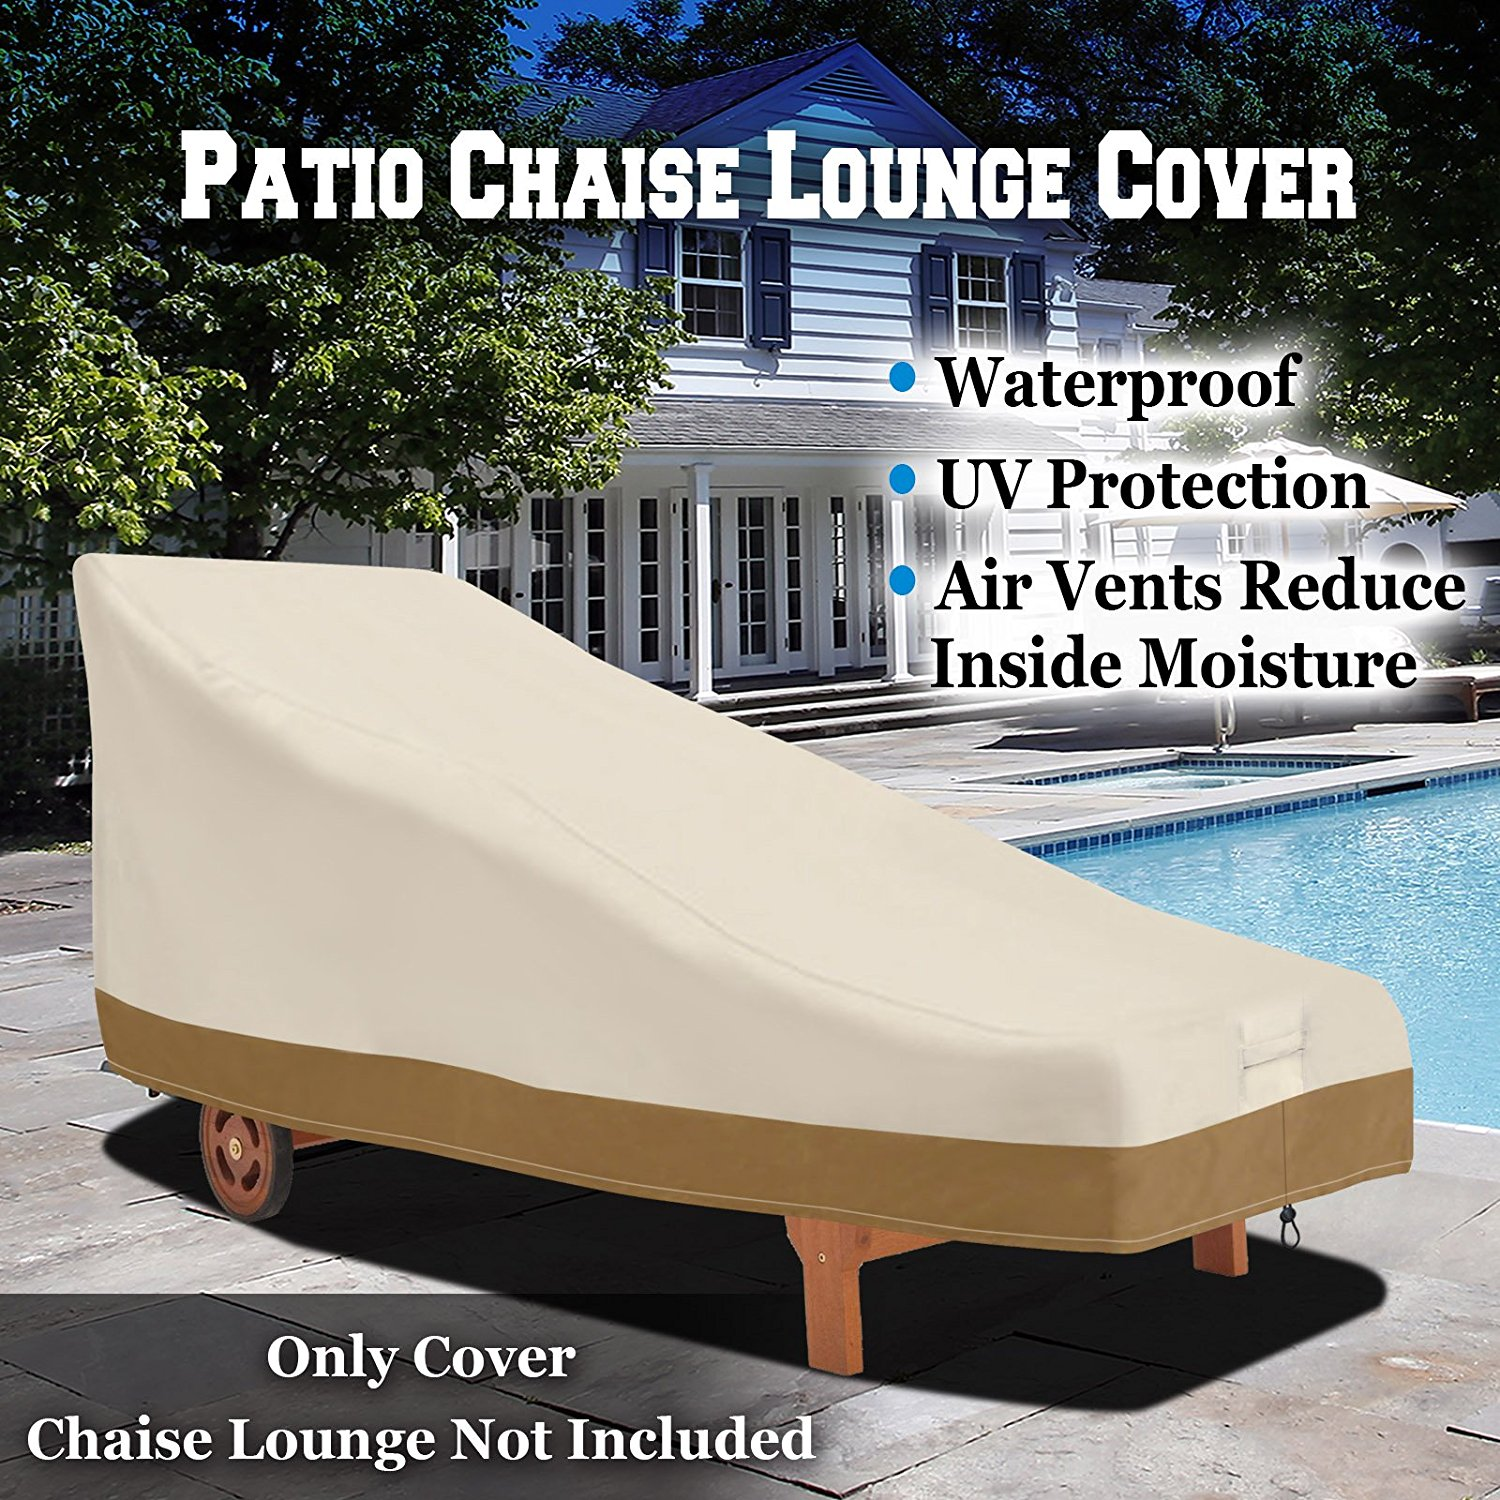 "Sunrise Outdoor Patio Day Chaise Lounge Cover, Furniture Protector, Waterproof 78.7"" x 36.2"" x 33"""